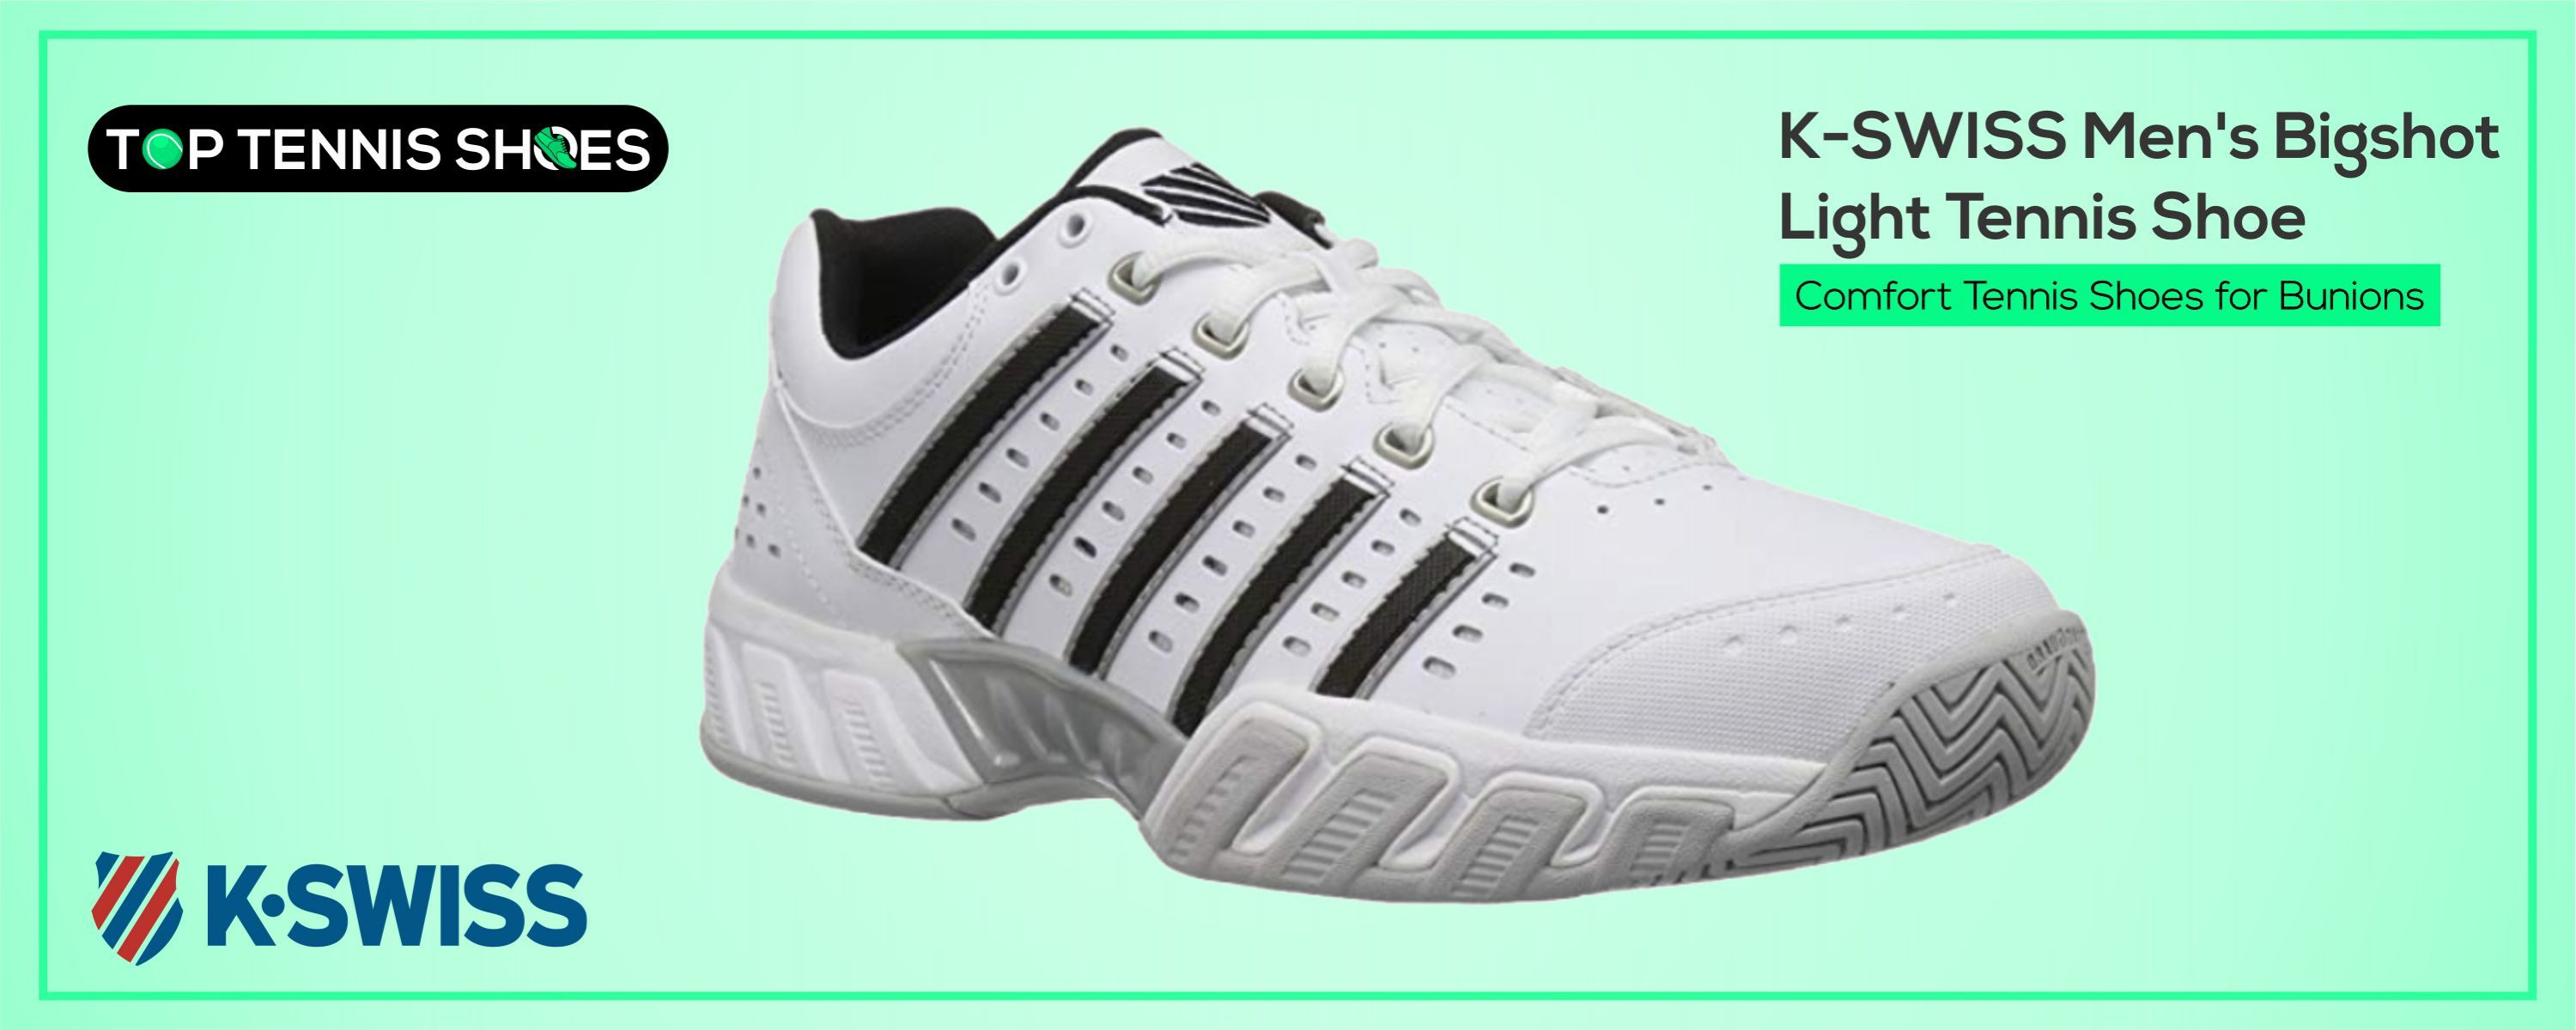 Comfort Tennis Shoes for Bunions